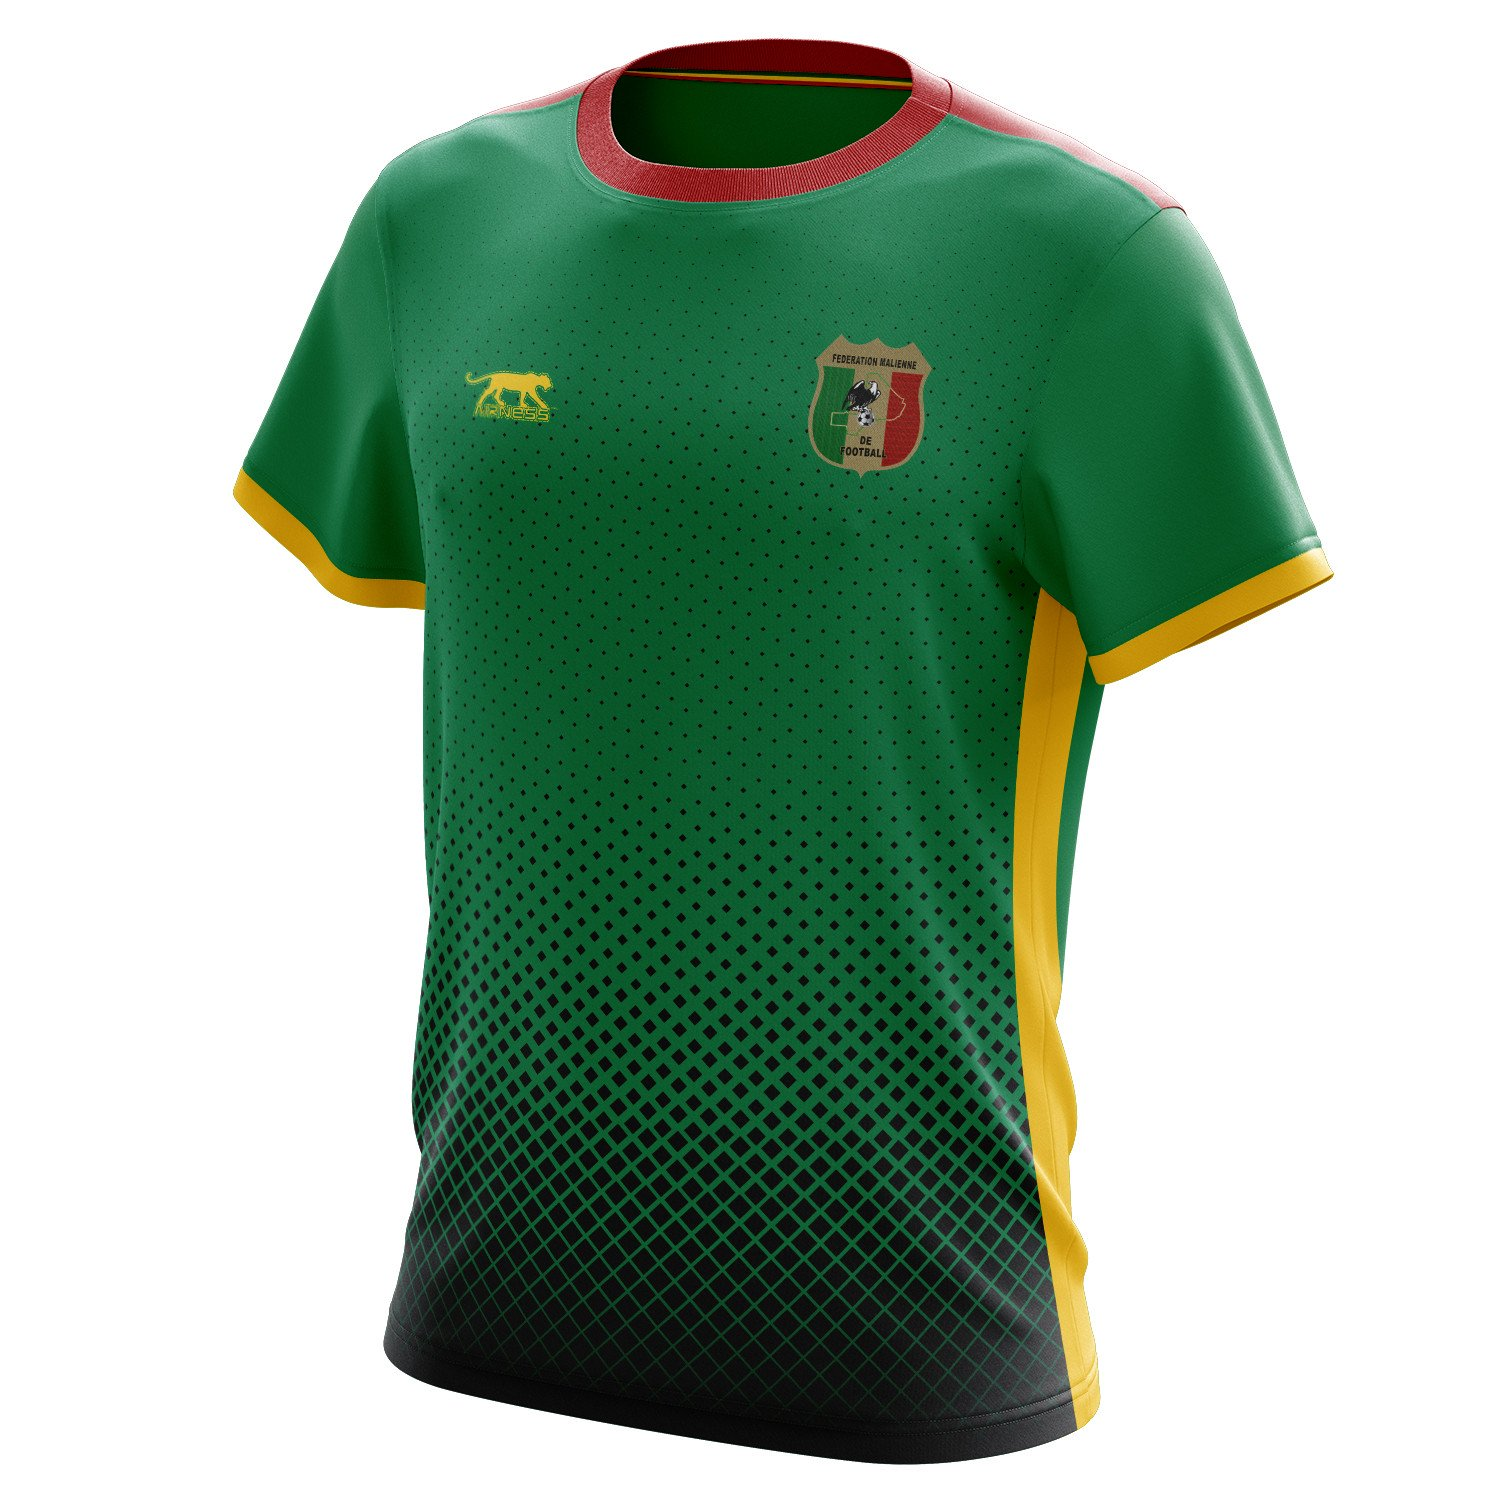 MAILLOT ENTRAINEMENT MALI HOMME AIRNESS